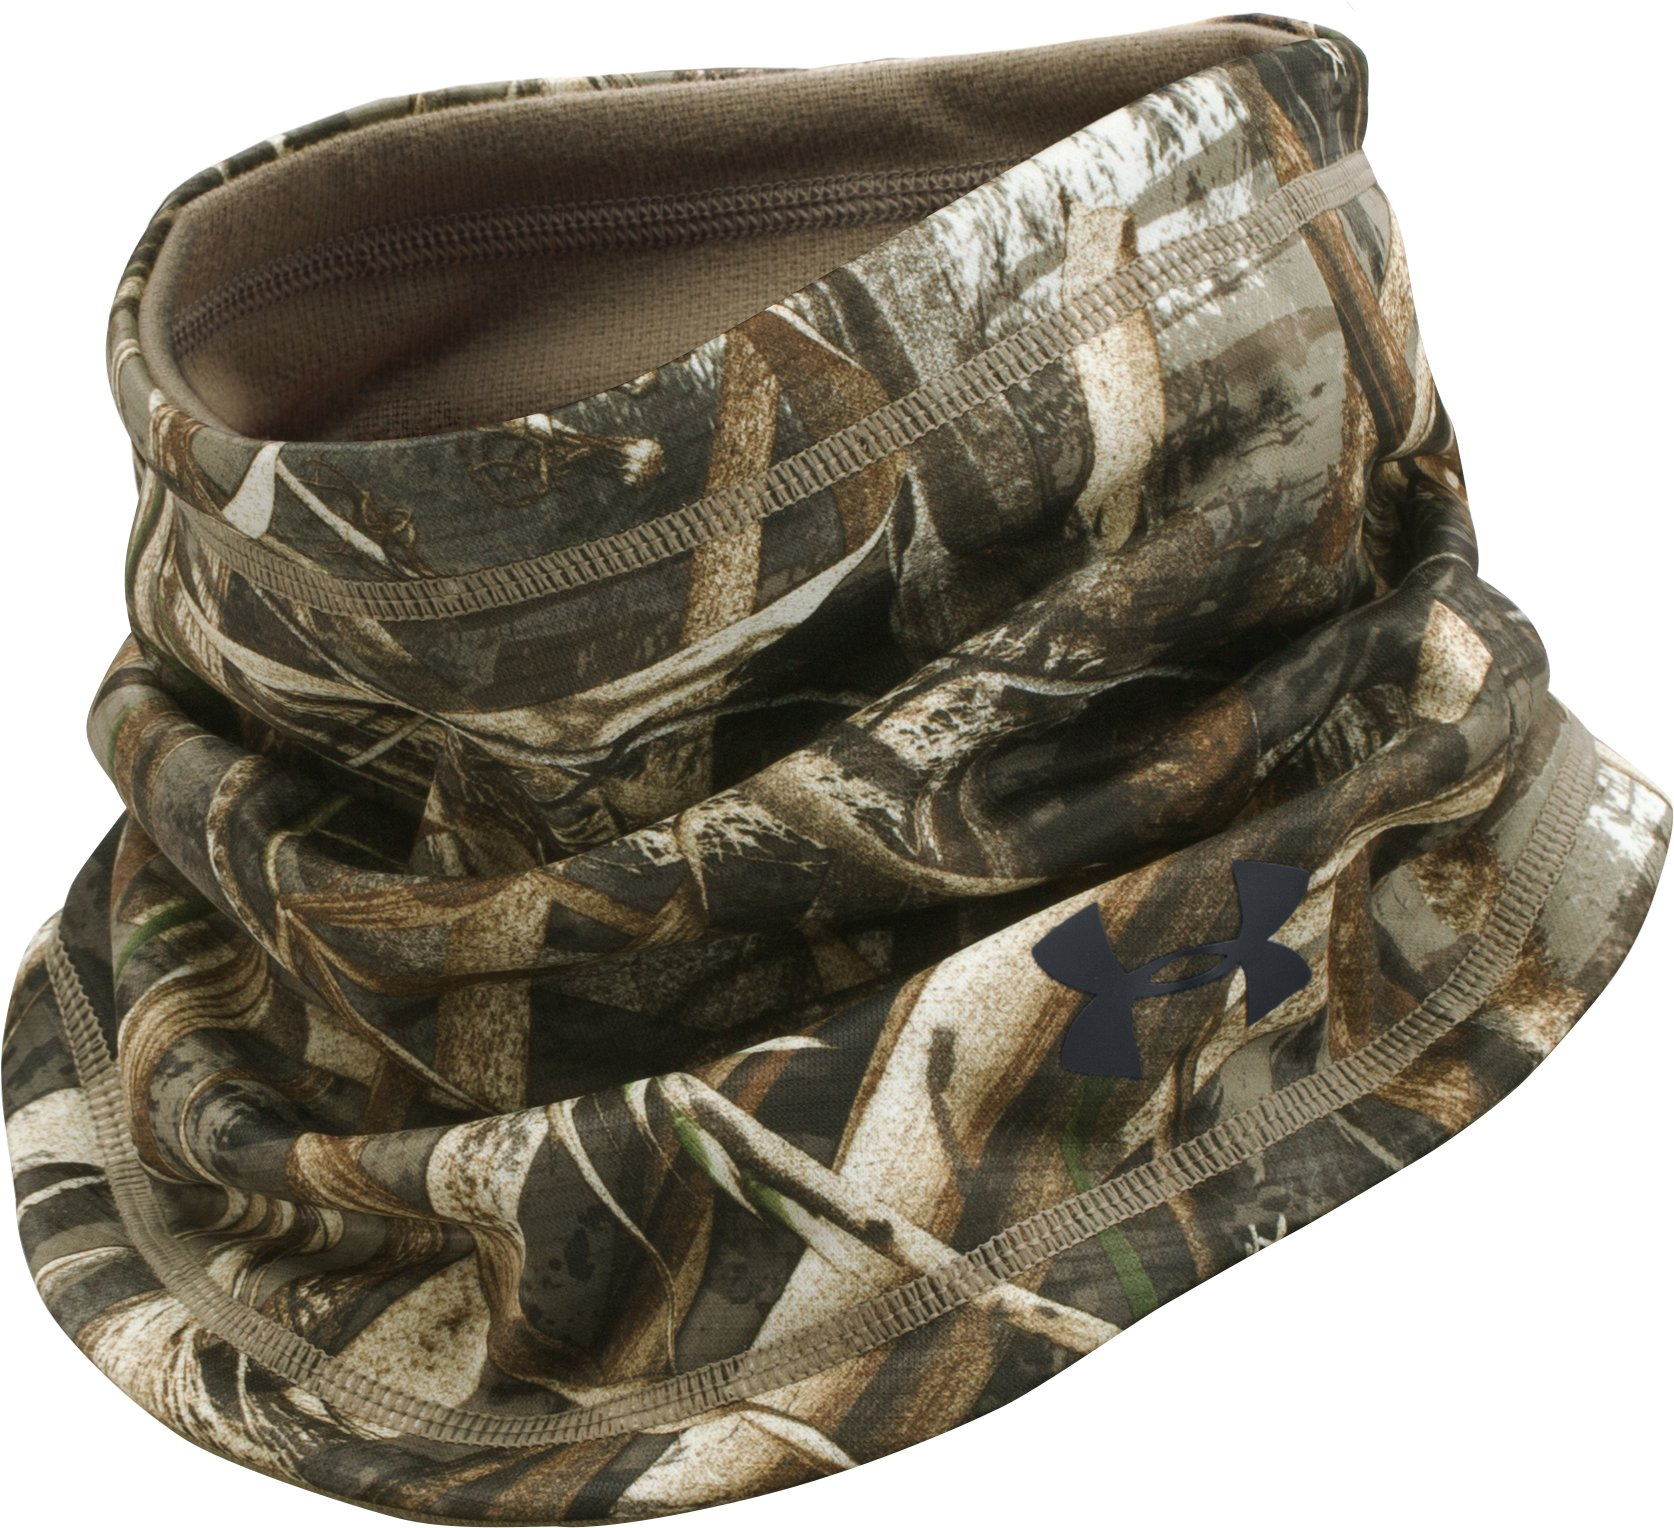 neck gaiters Men's UA Scent Control Storm Neck Gaiter Great product....Worked well during below freezing weather....Great product